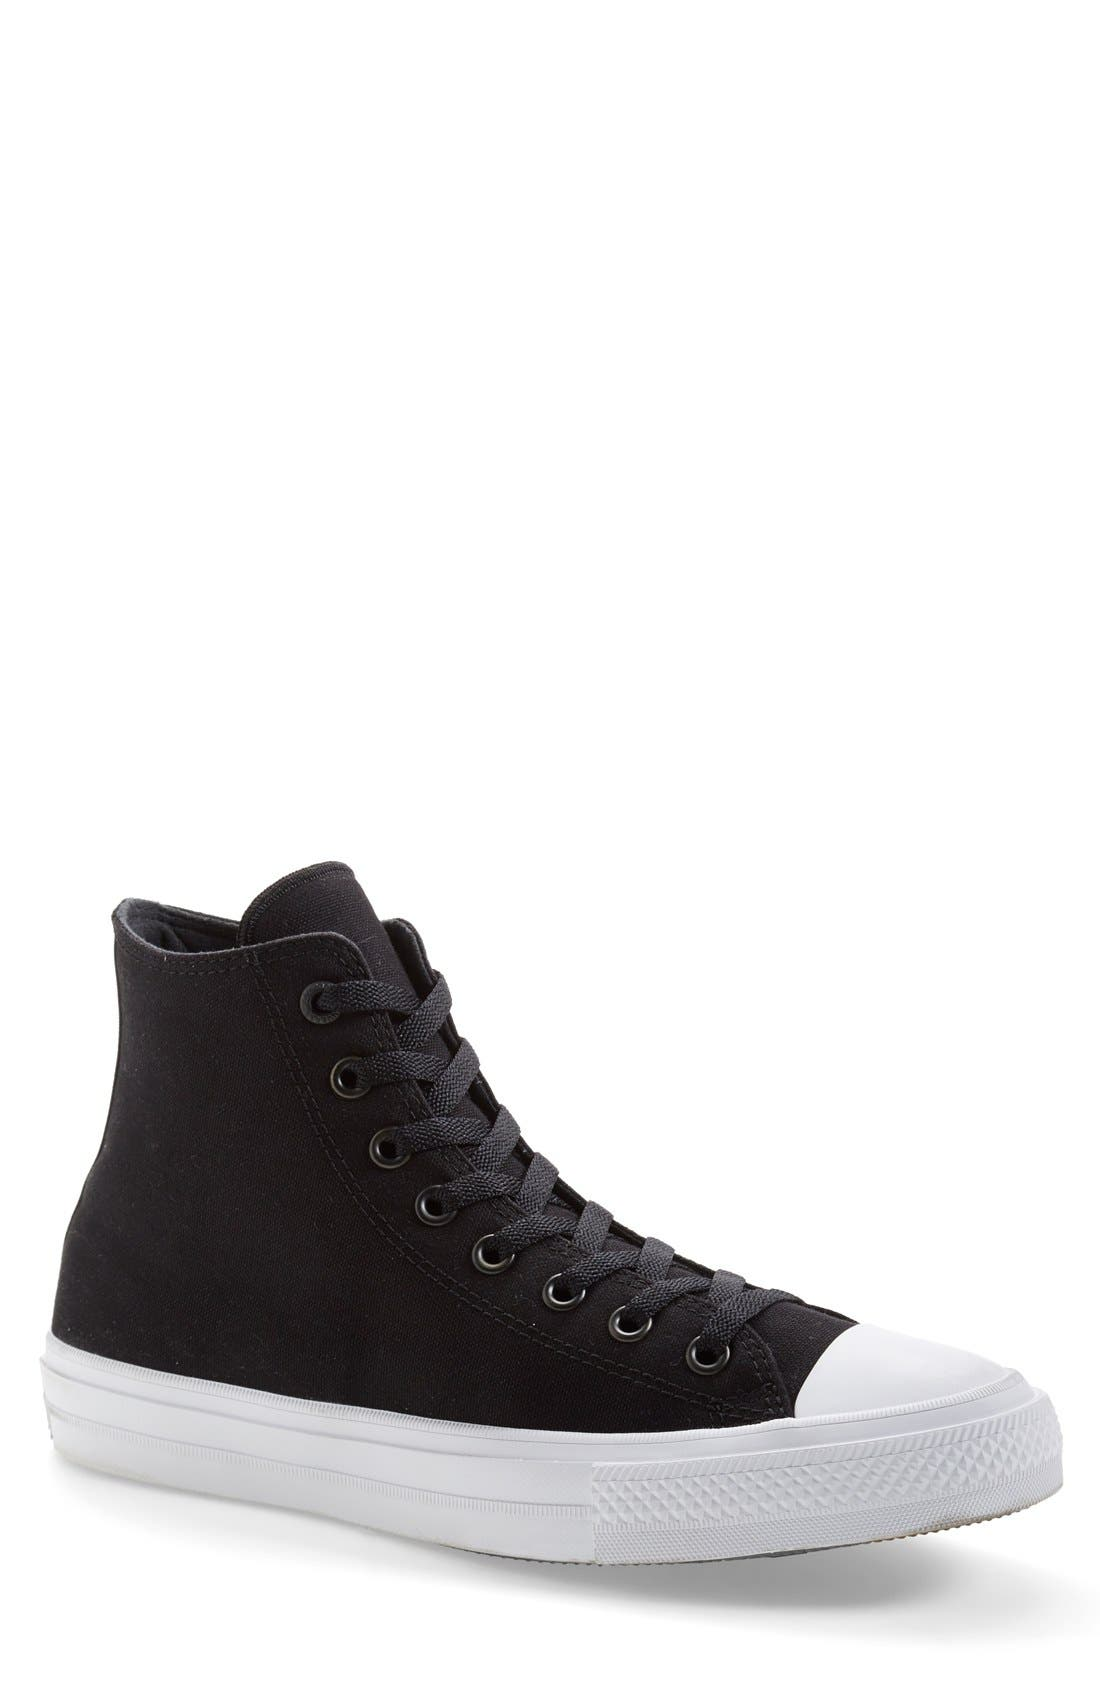 Chuck Taylor<sup>®</sup> All Star<sup>®</sup> Chuck II High Top Sneaker,                         Main,                         color, 001